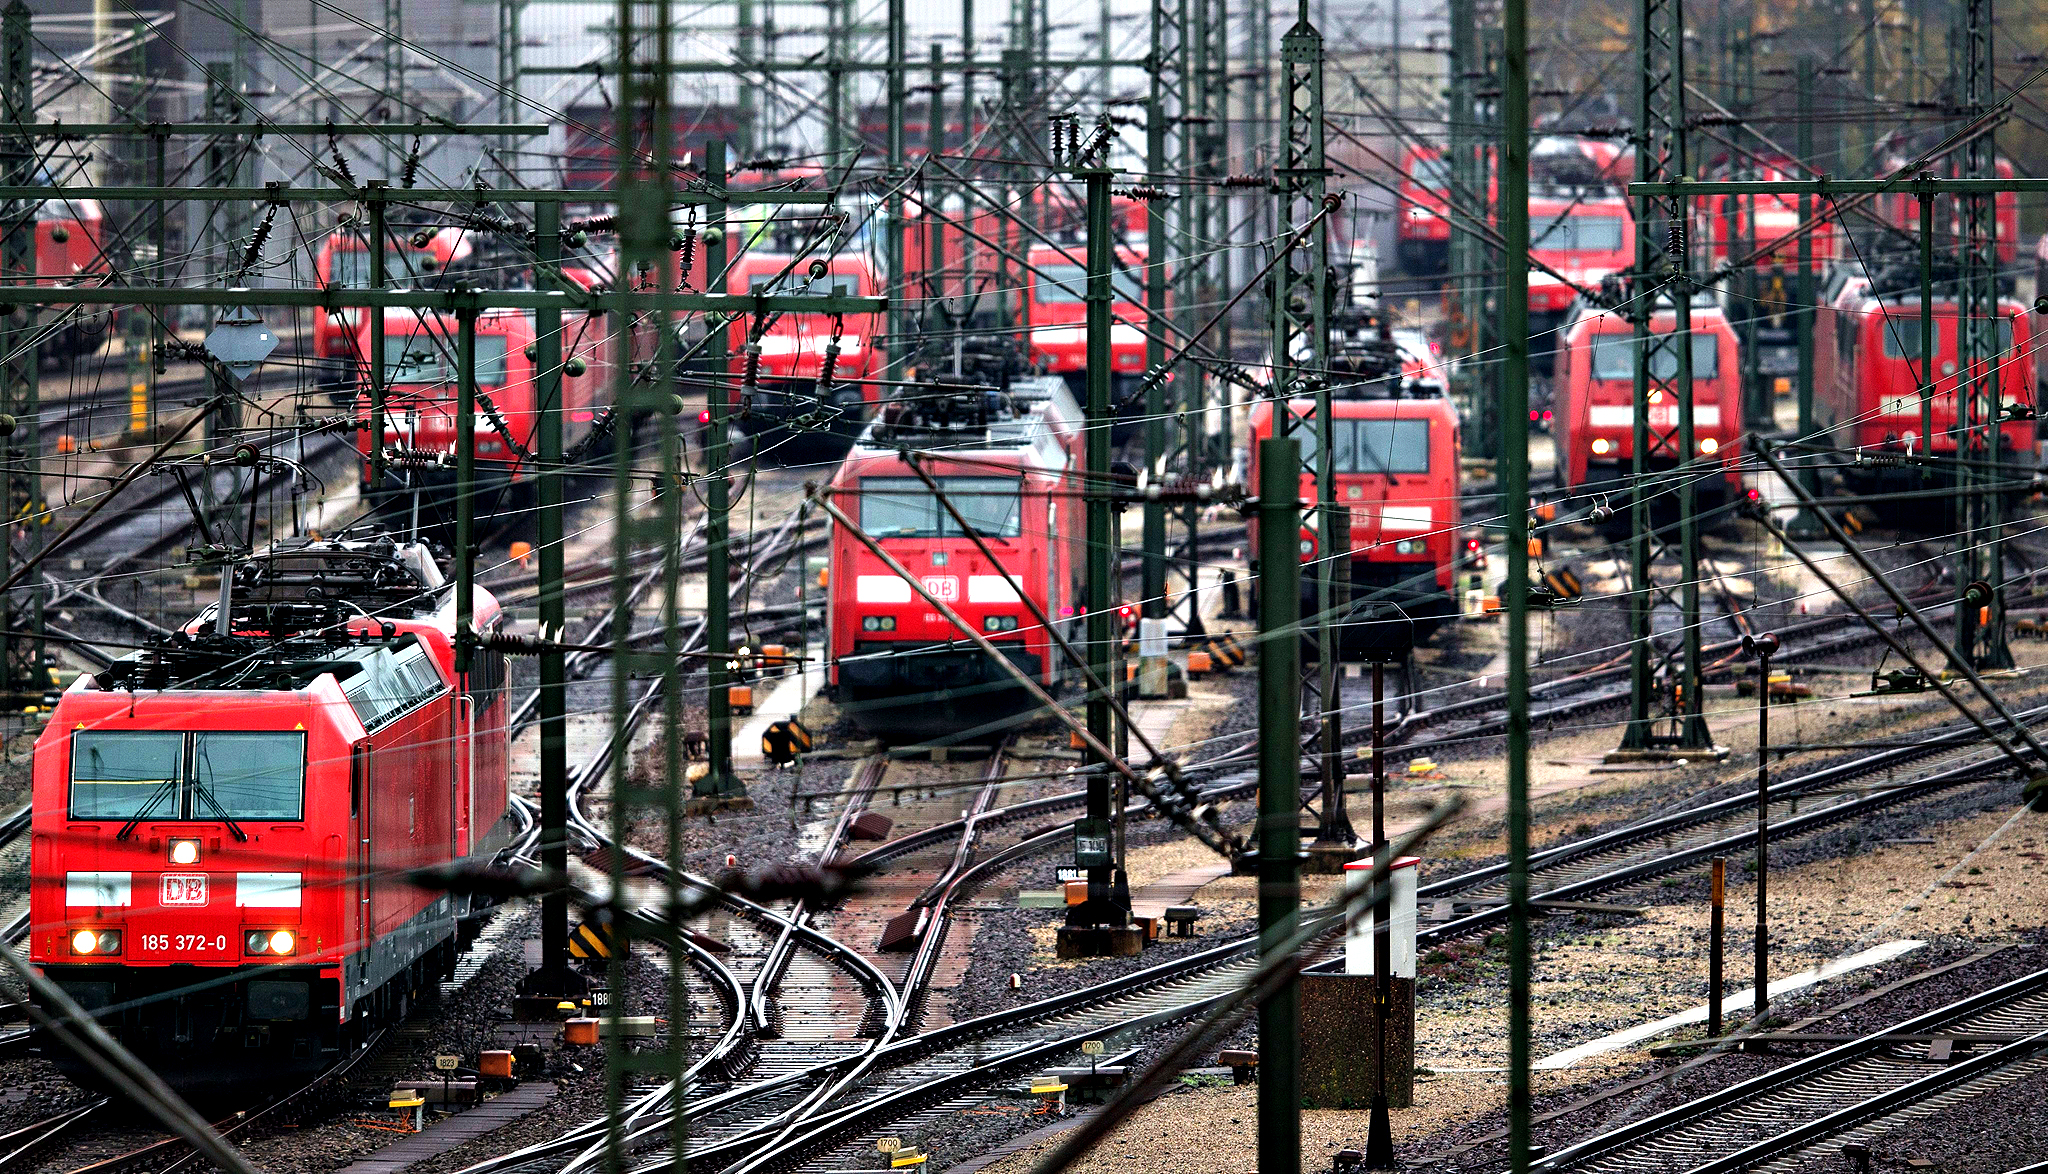 Train engines stand idle at a railway marshalling yard in Seevetal, Germany on Wednesday. Germany's train drivers' union 'Gewerkschaft Deutscher Lokomotivfuehrer (GDL)', has announced to go forward with the longest strike in the 20-year history of the Deutsche Bahn. The strike announcement on 04 November triggered condemnation from both business and political leaders. Strike actions are planned to last from Wednesday 05 November to Monday 10 November 2014.